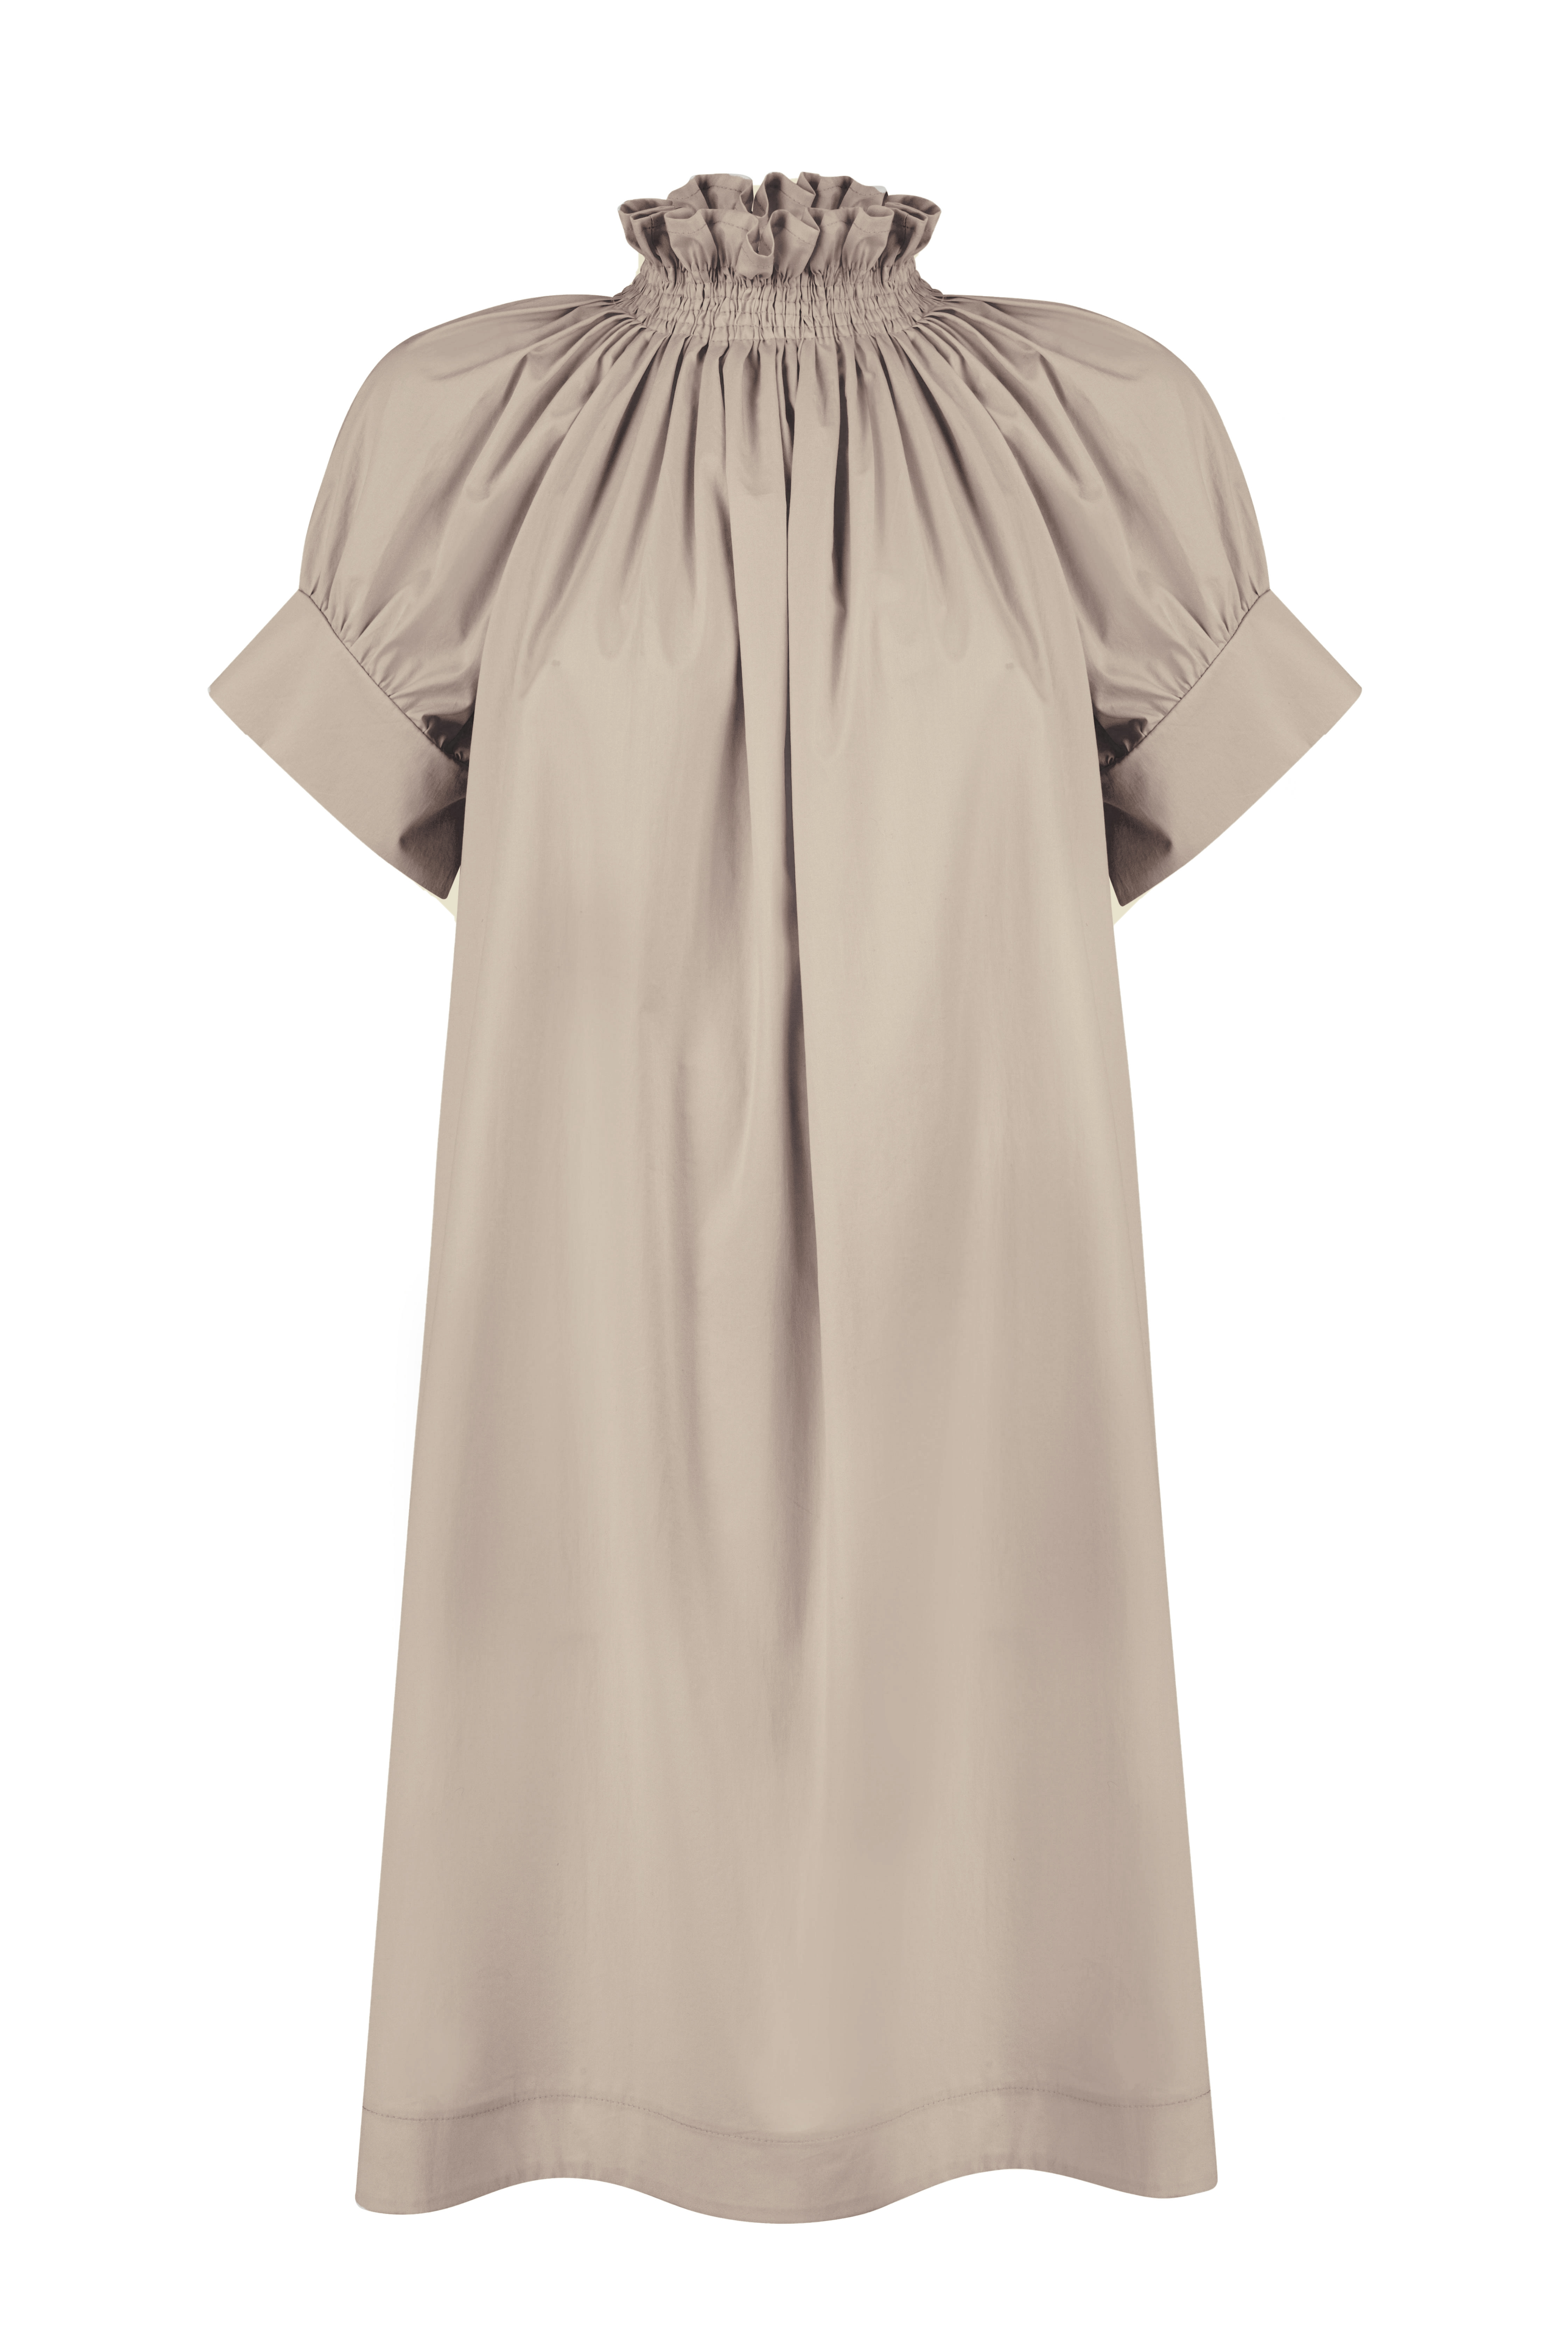 Franka Cotton Dress by Lorenz Peter on curated-crowd.com